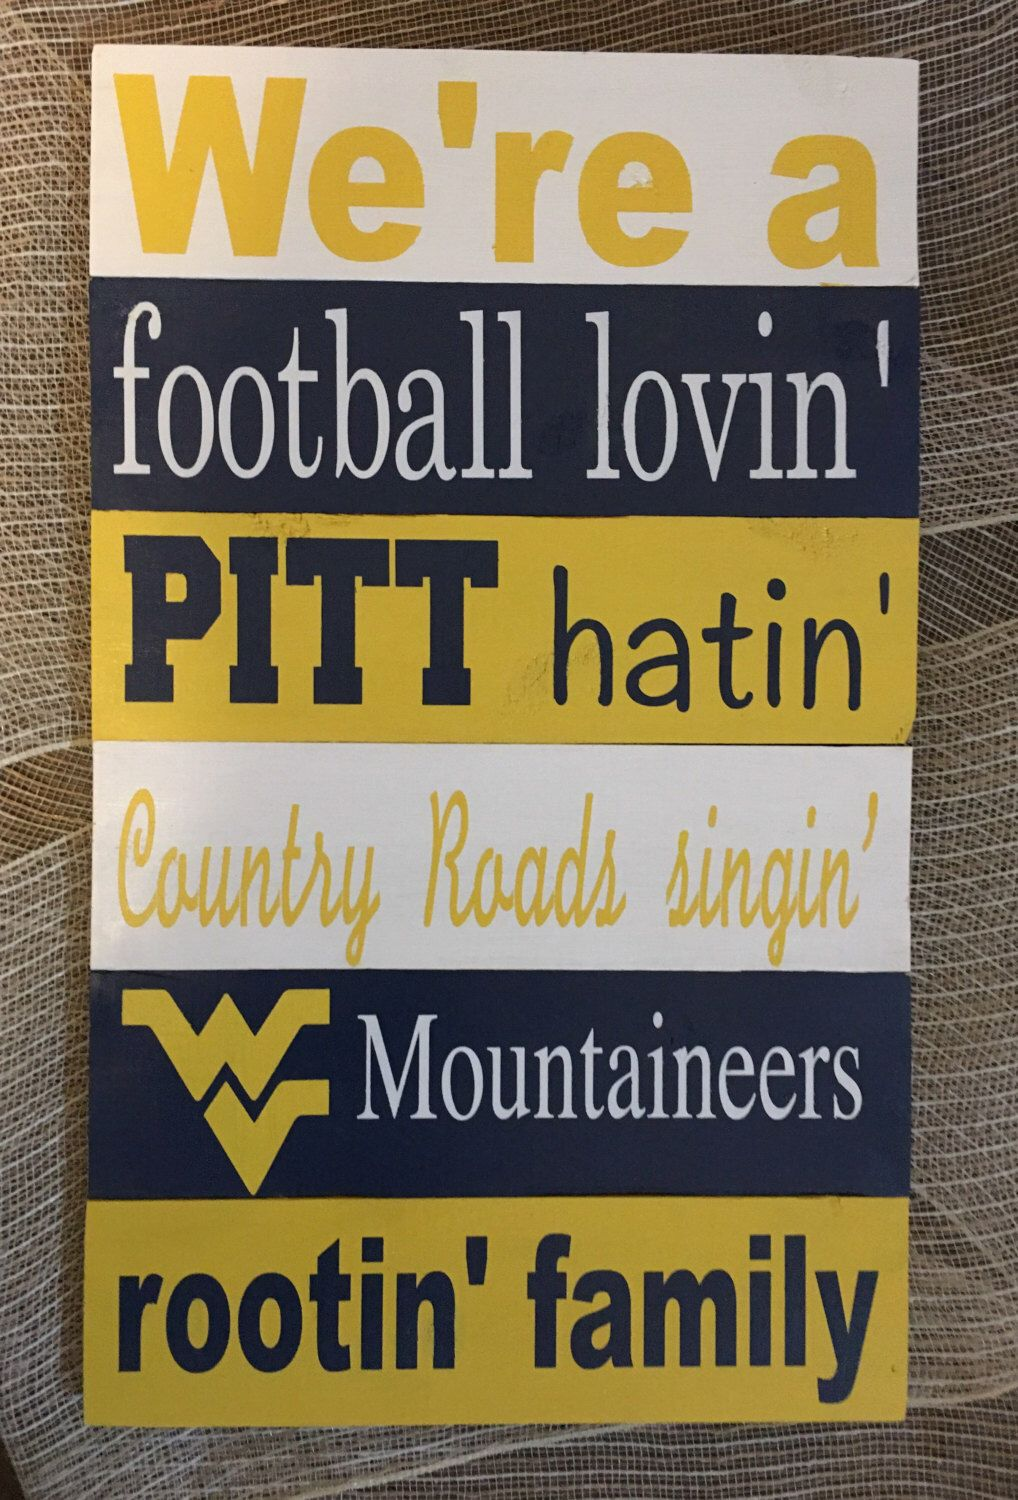 West Virginia Mountaineers Home Decor Great For WVU Family Perfect Graduates